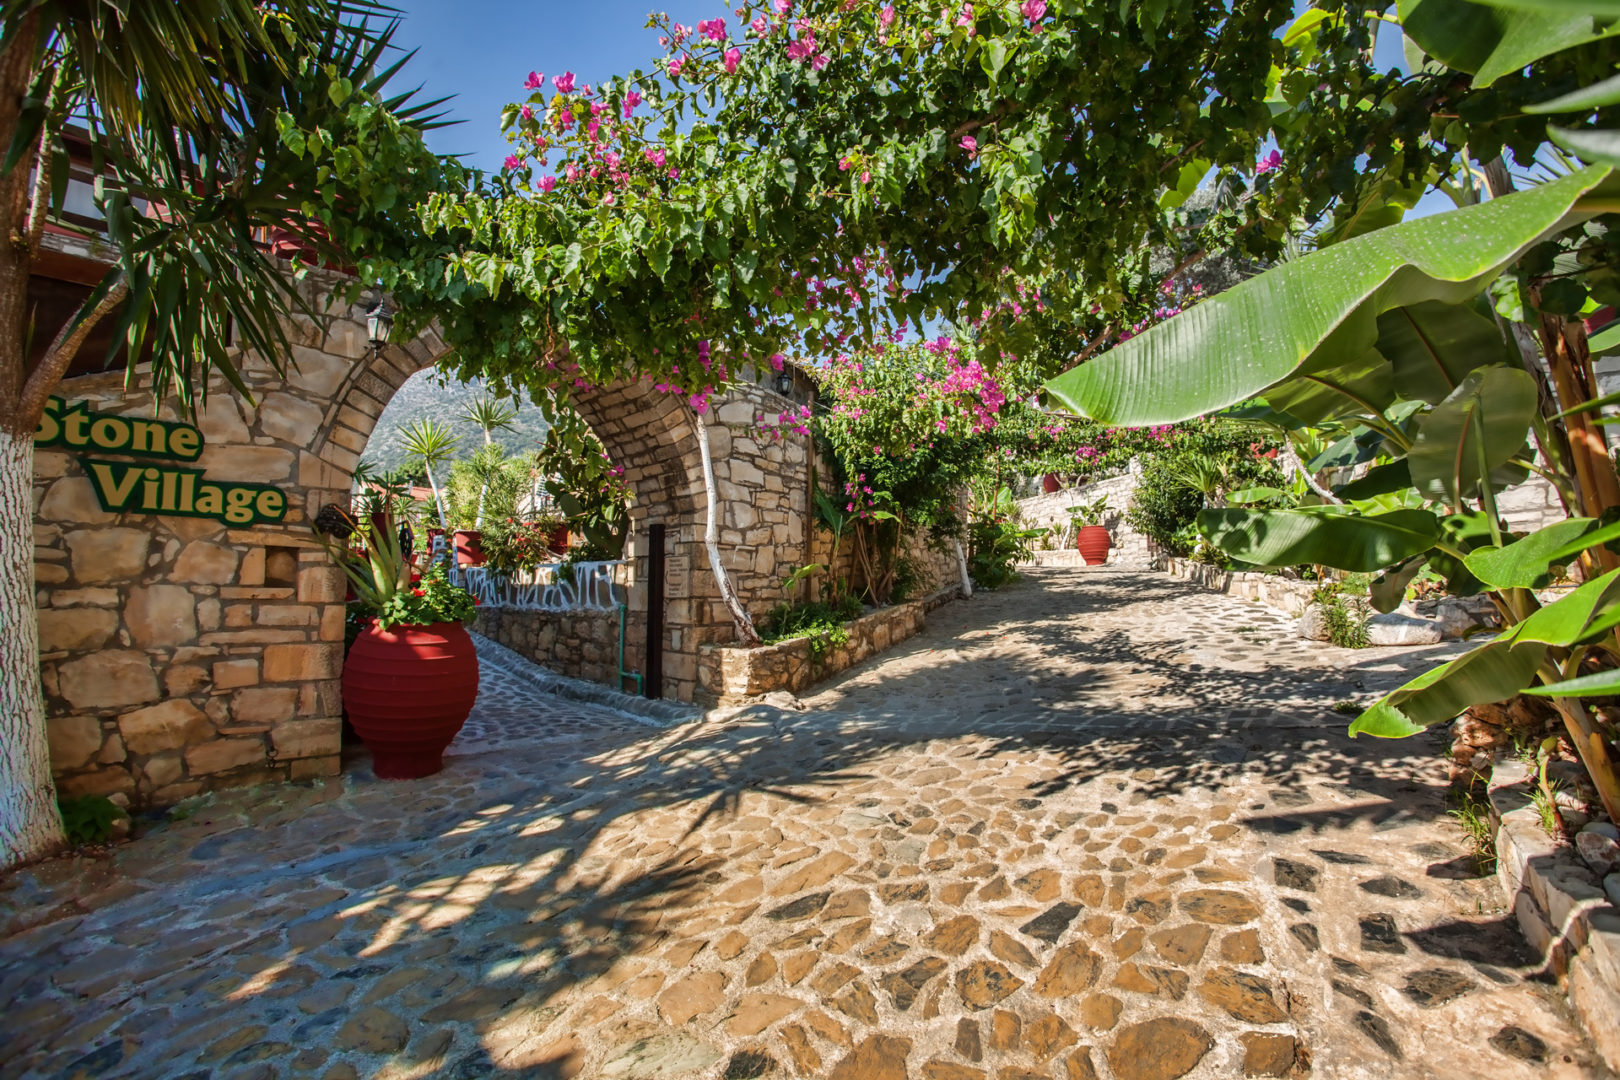 Hotel in Bali Crete - Stone Village - Main Entrance